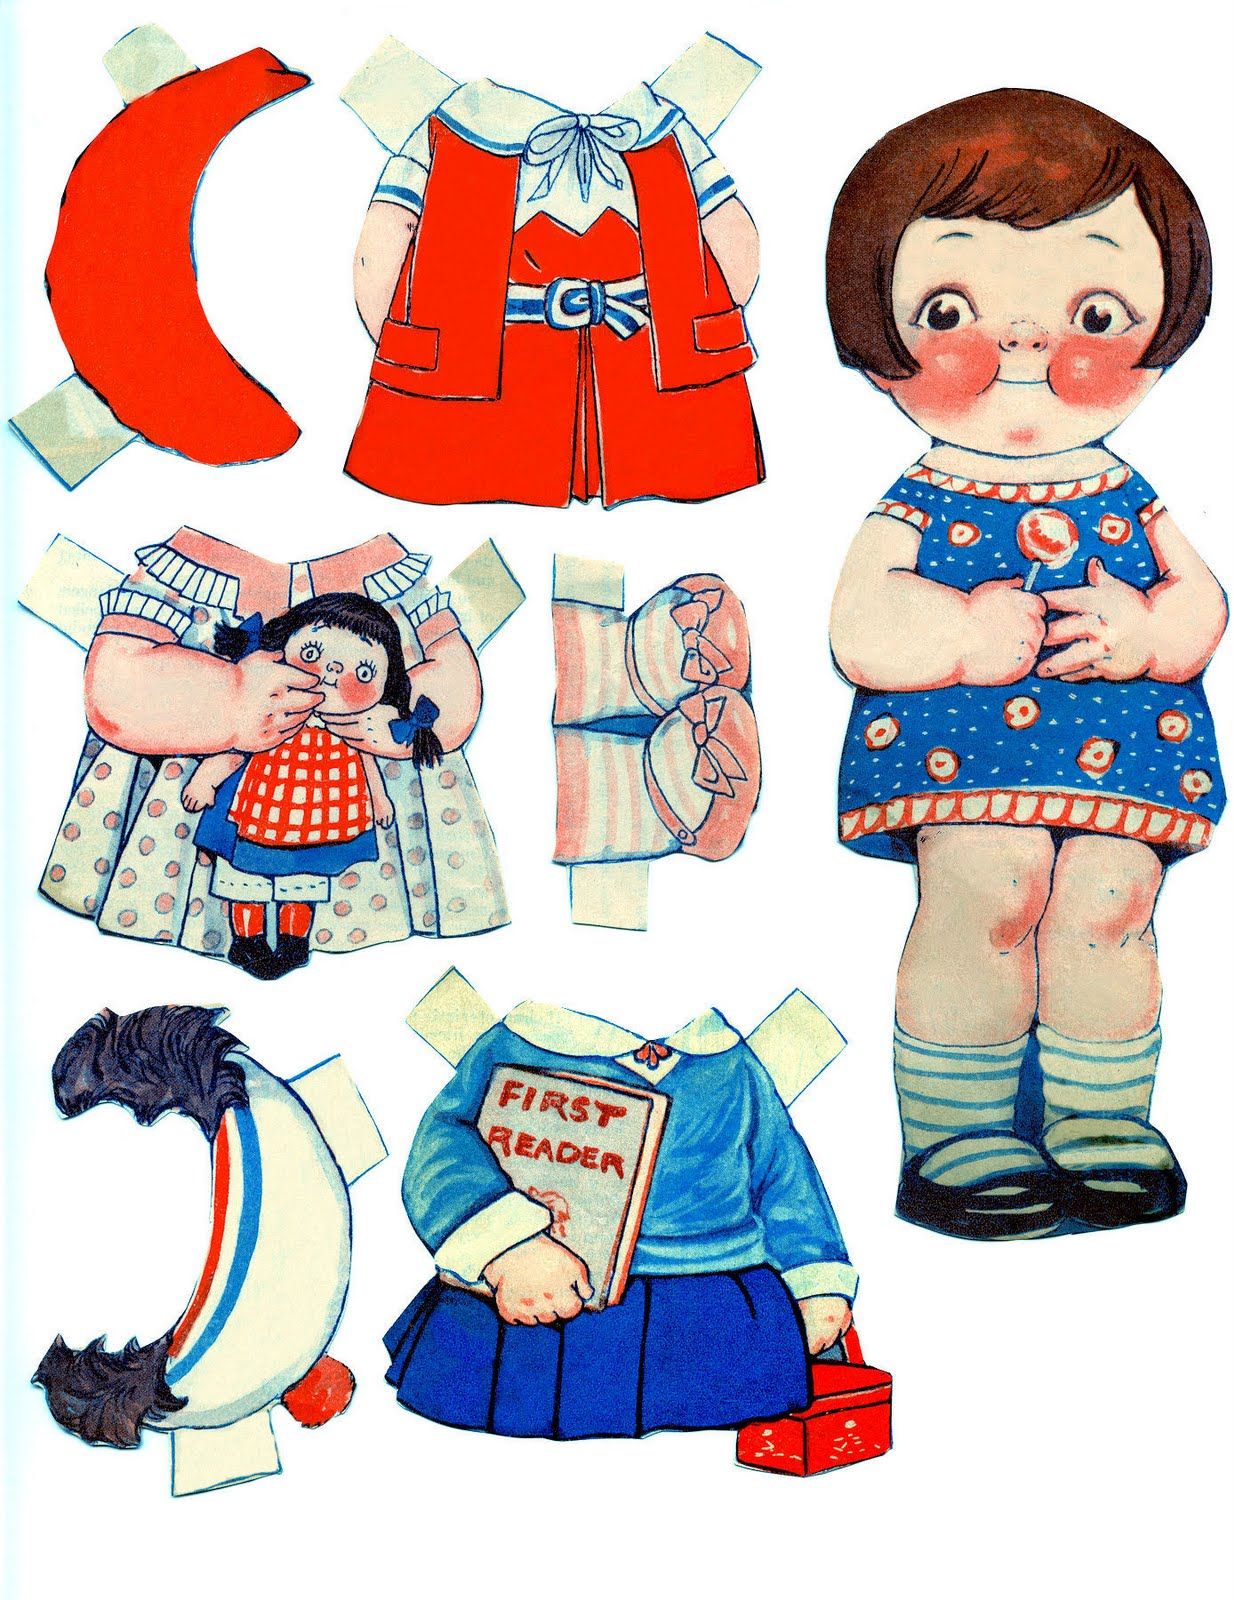 image about Printable Vintage Paper Dolls titled No cost Printable - Traditional Paper Dolls - The Graphics Fairy